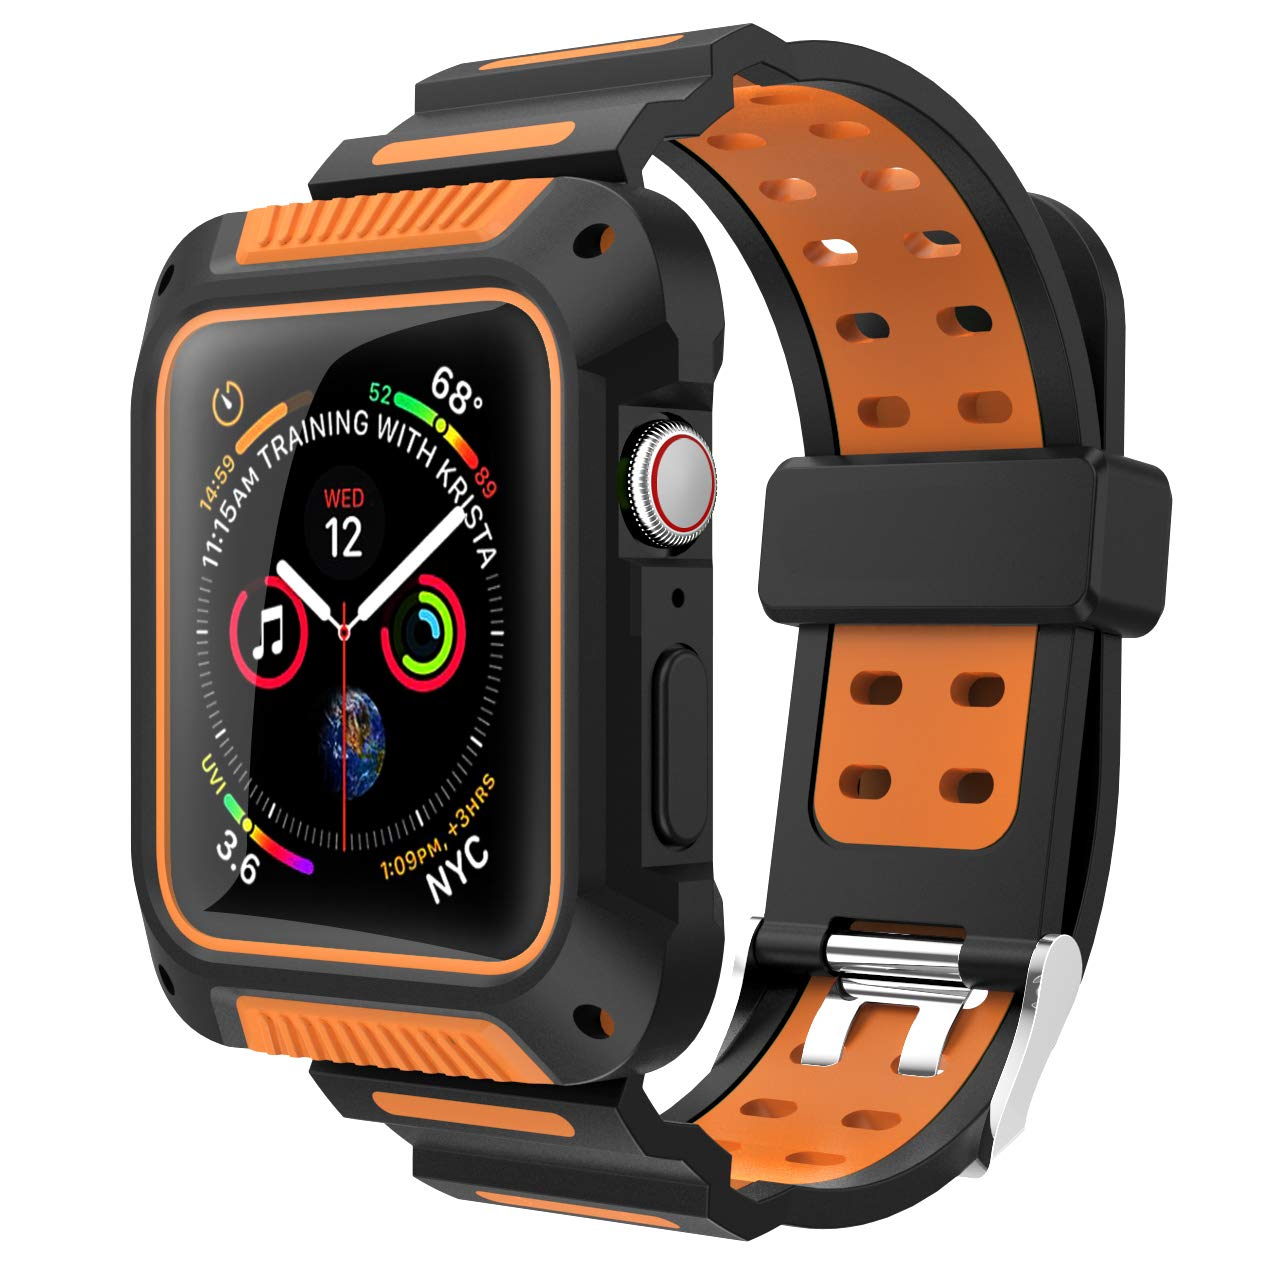 Compatible with Apple Watch Band 44mm Case, VORI Rugged Protective Case with Sport Silicone Strap Bands Shock-Proof and Shatter-Resistant Case for iWatch Series 4 Edition 44mm Men 2018 Release, Orange by VORI